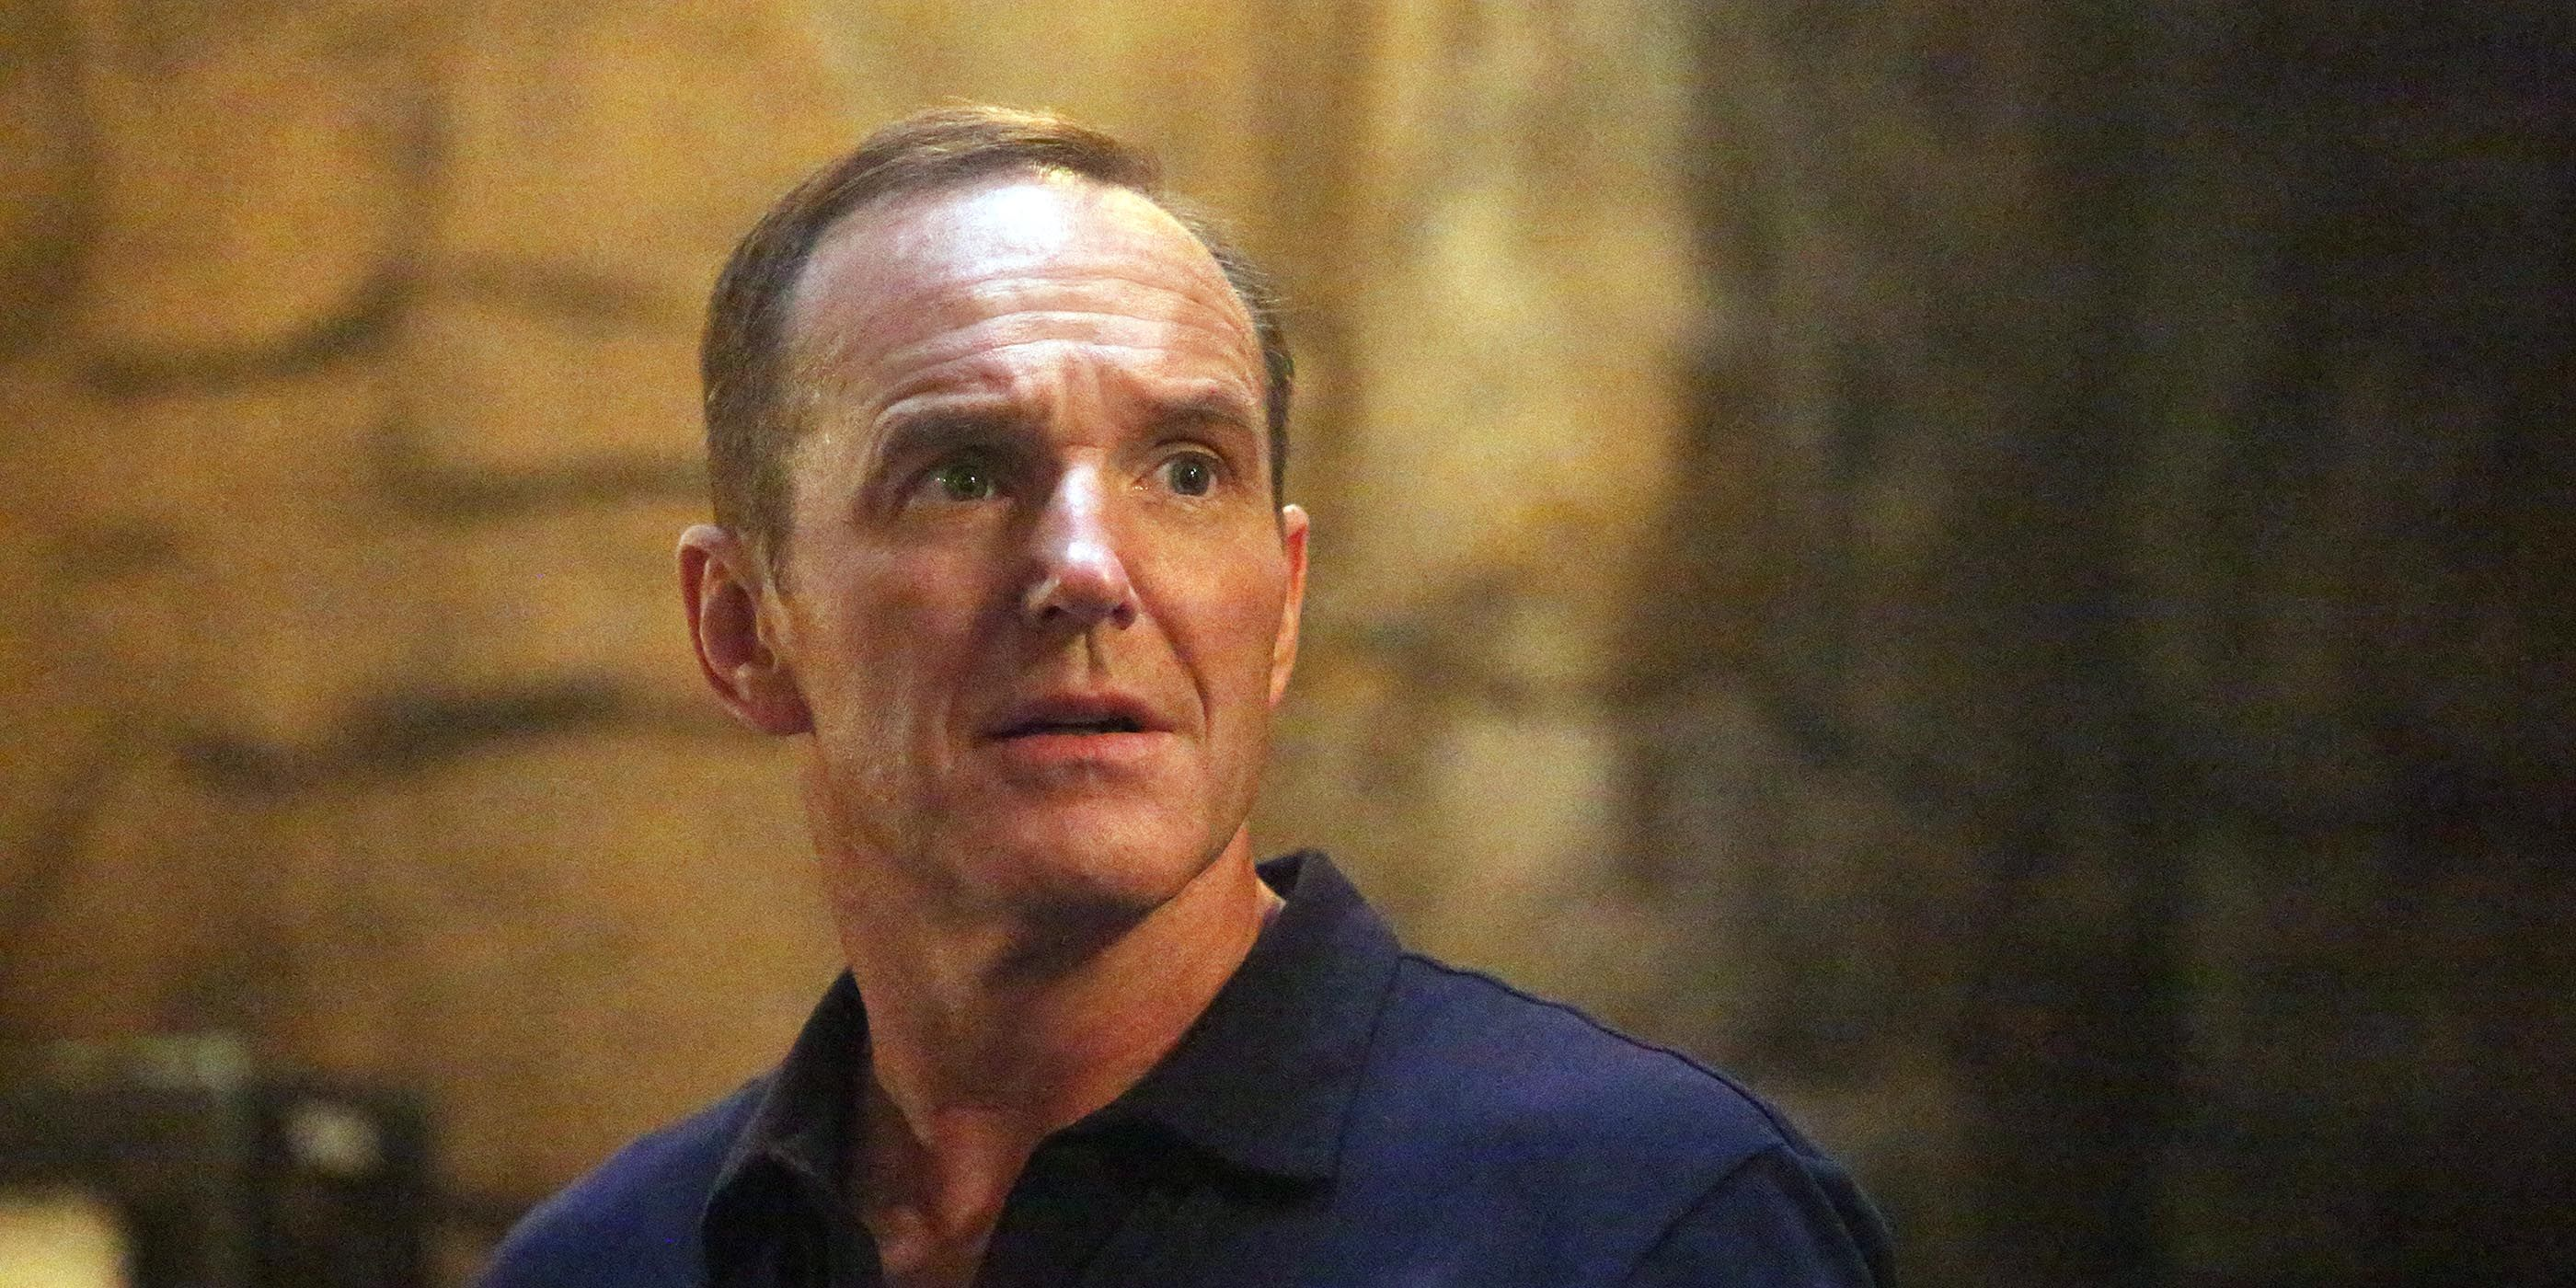 Phil Coulson in Marvel's Agents of SHIELD